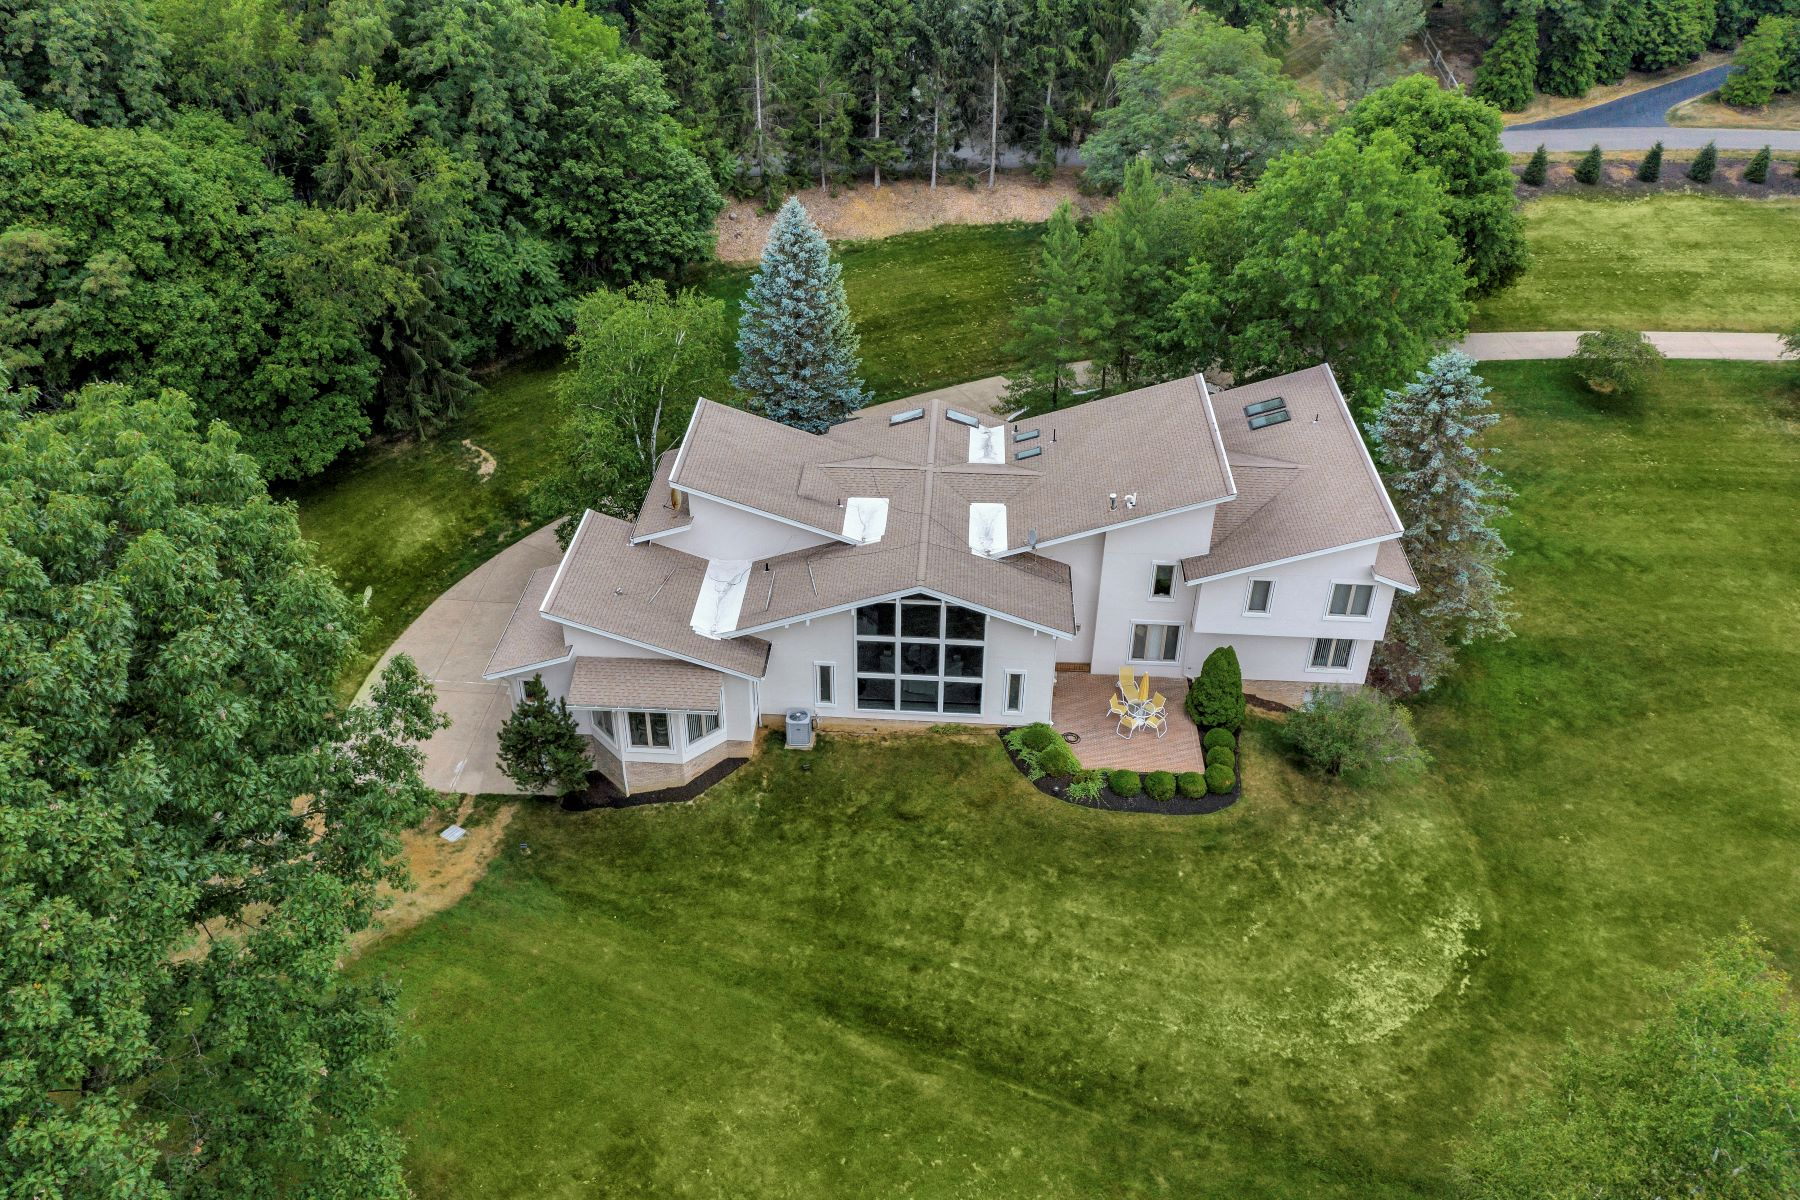 Single Family Homes for Sale at Live Contemporary- Sewickley Heights- 102 Fair Acres Drive Sewickley, Pennsylvania 15143 United States